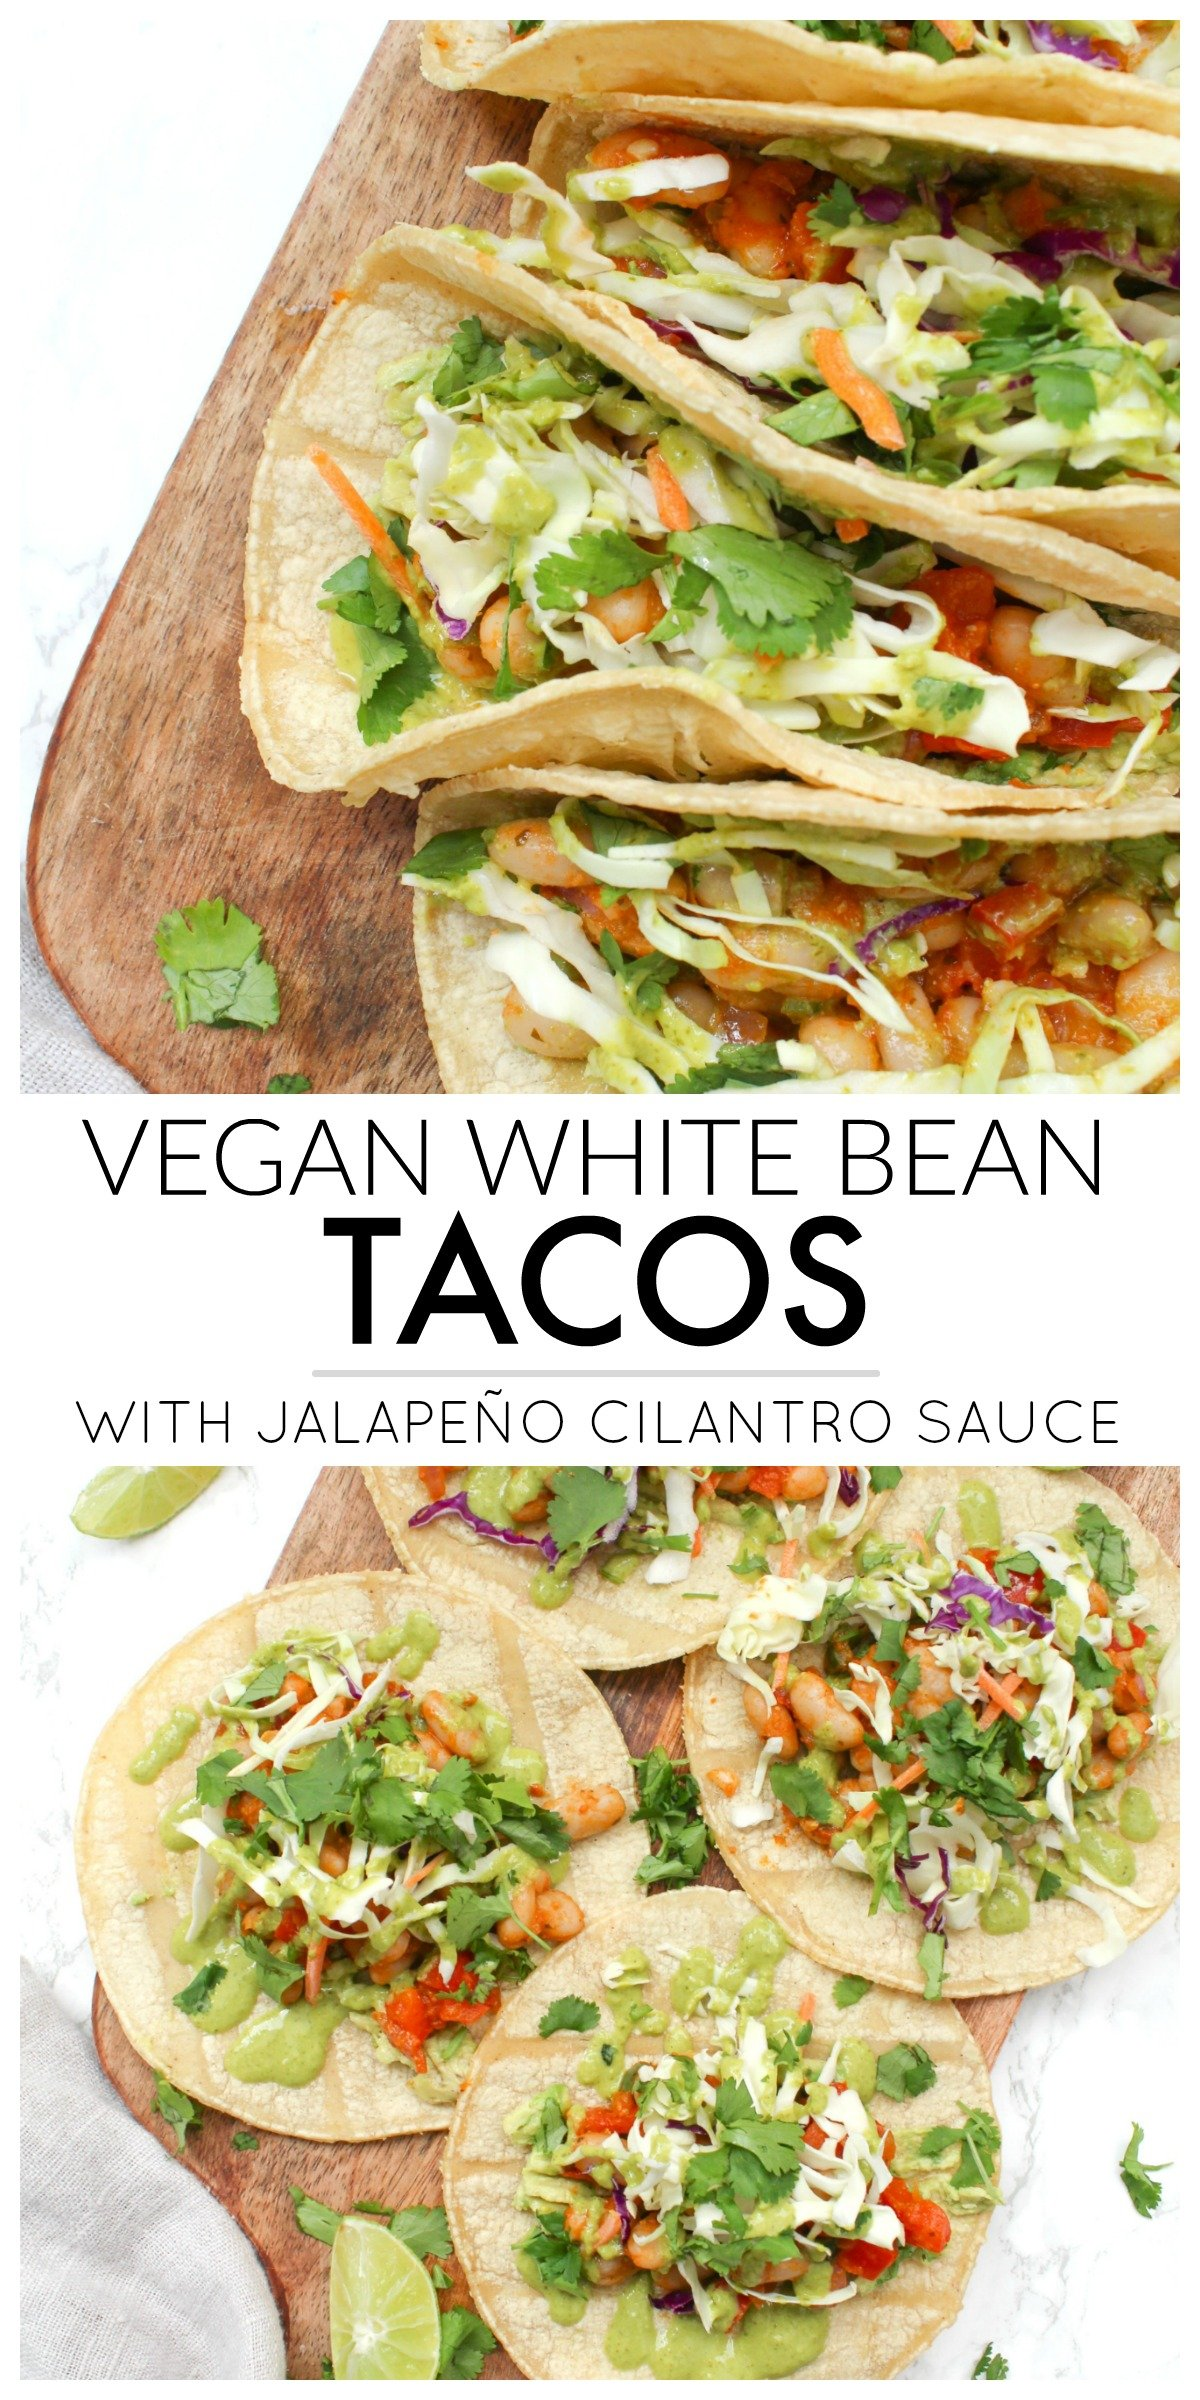 These Vegan White Bean Tacos with Jalapeño Cilantro Sauce are filled with spicy white beans, pre-made slaw and a delicious green sauce   ThisSavoryVegan.com #thissavoryvegan #vegantacos